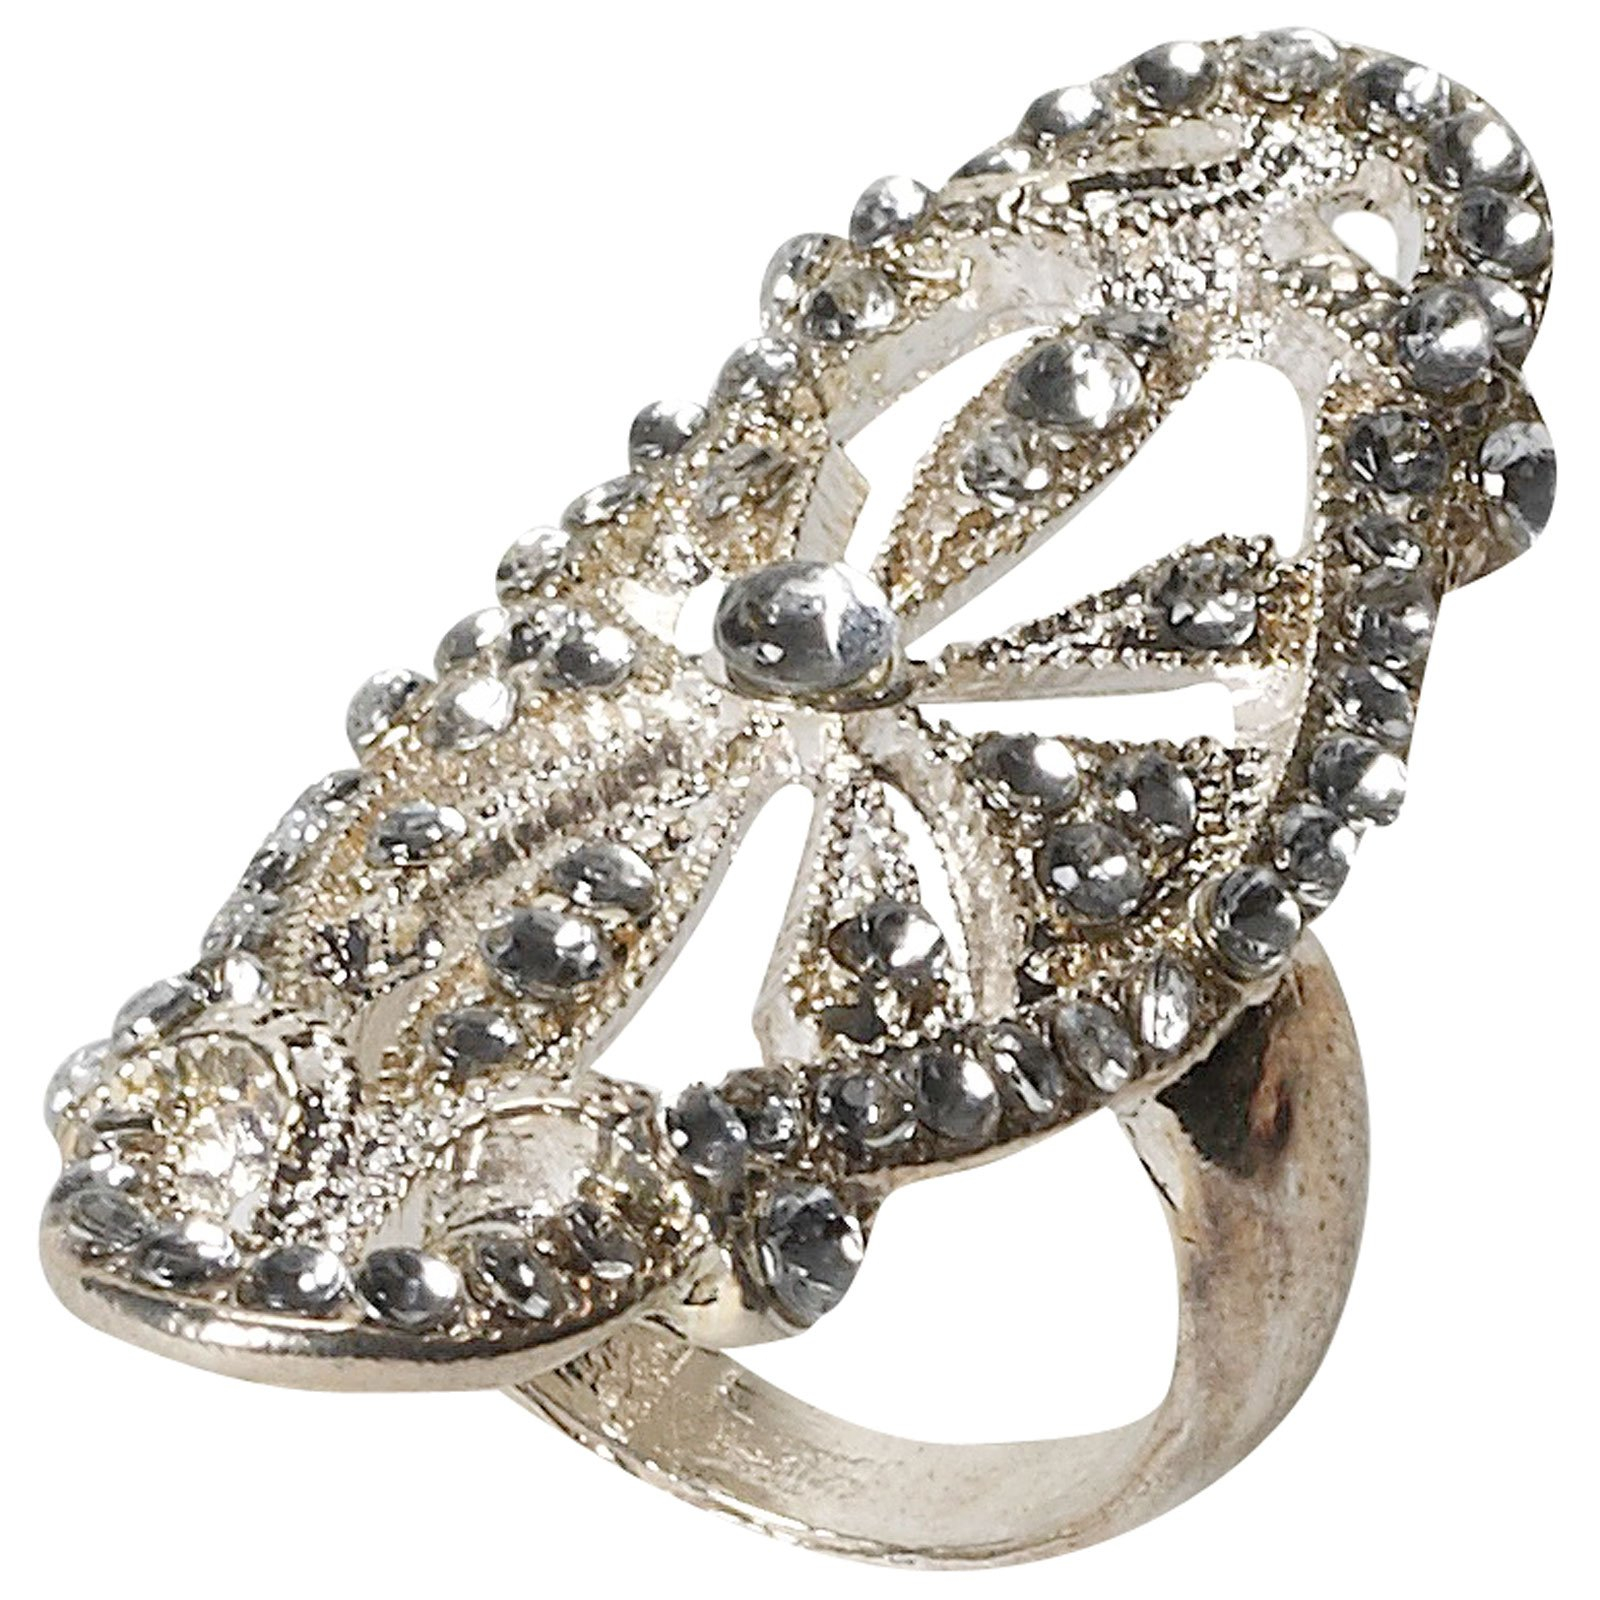 Vintage Hollywood Rhinestone Encrusted Adult Ring